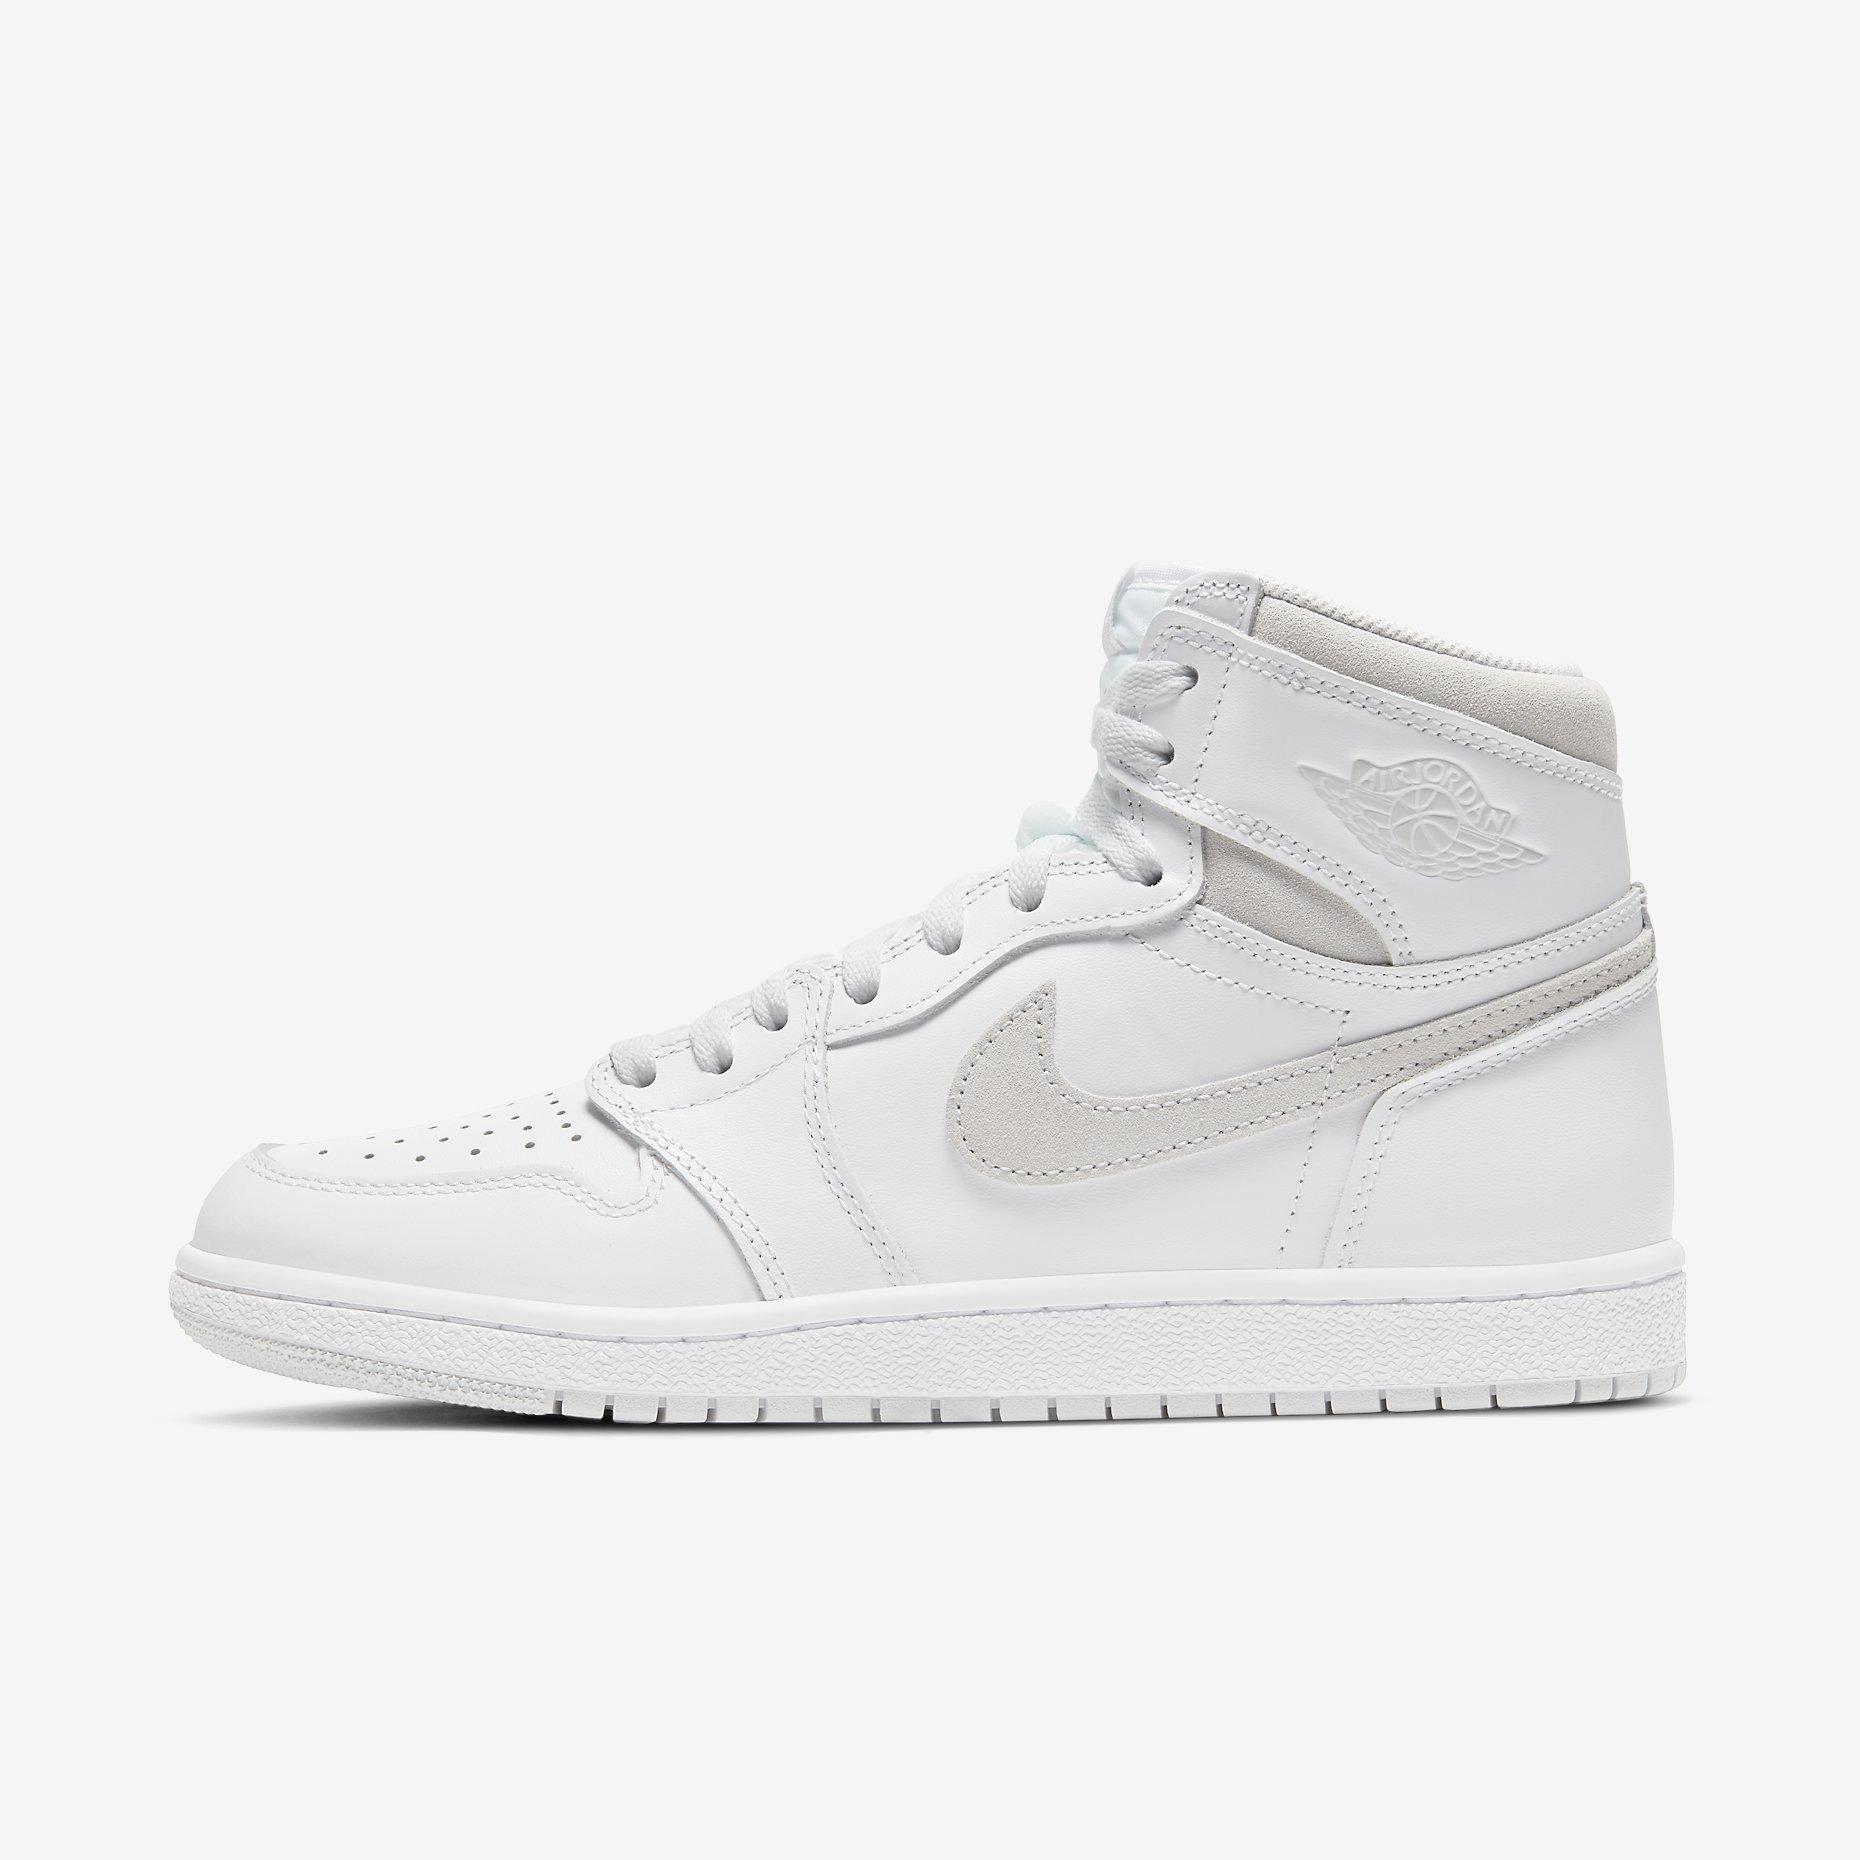 Air Jordan 1 High 85 'Neutral Grey'}